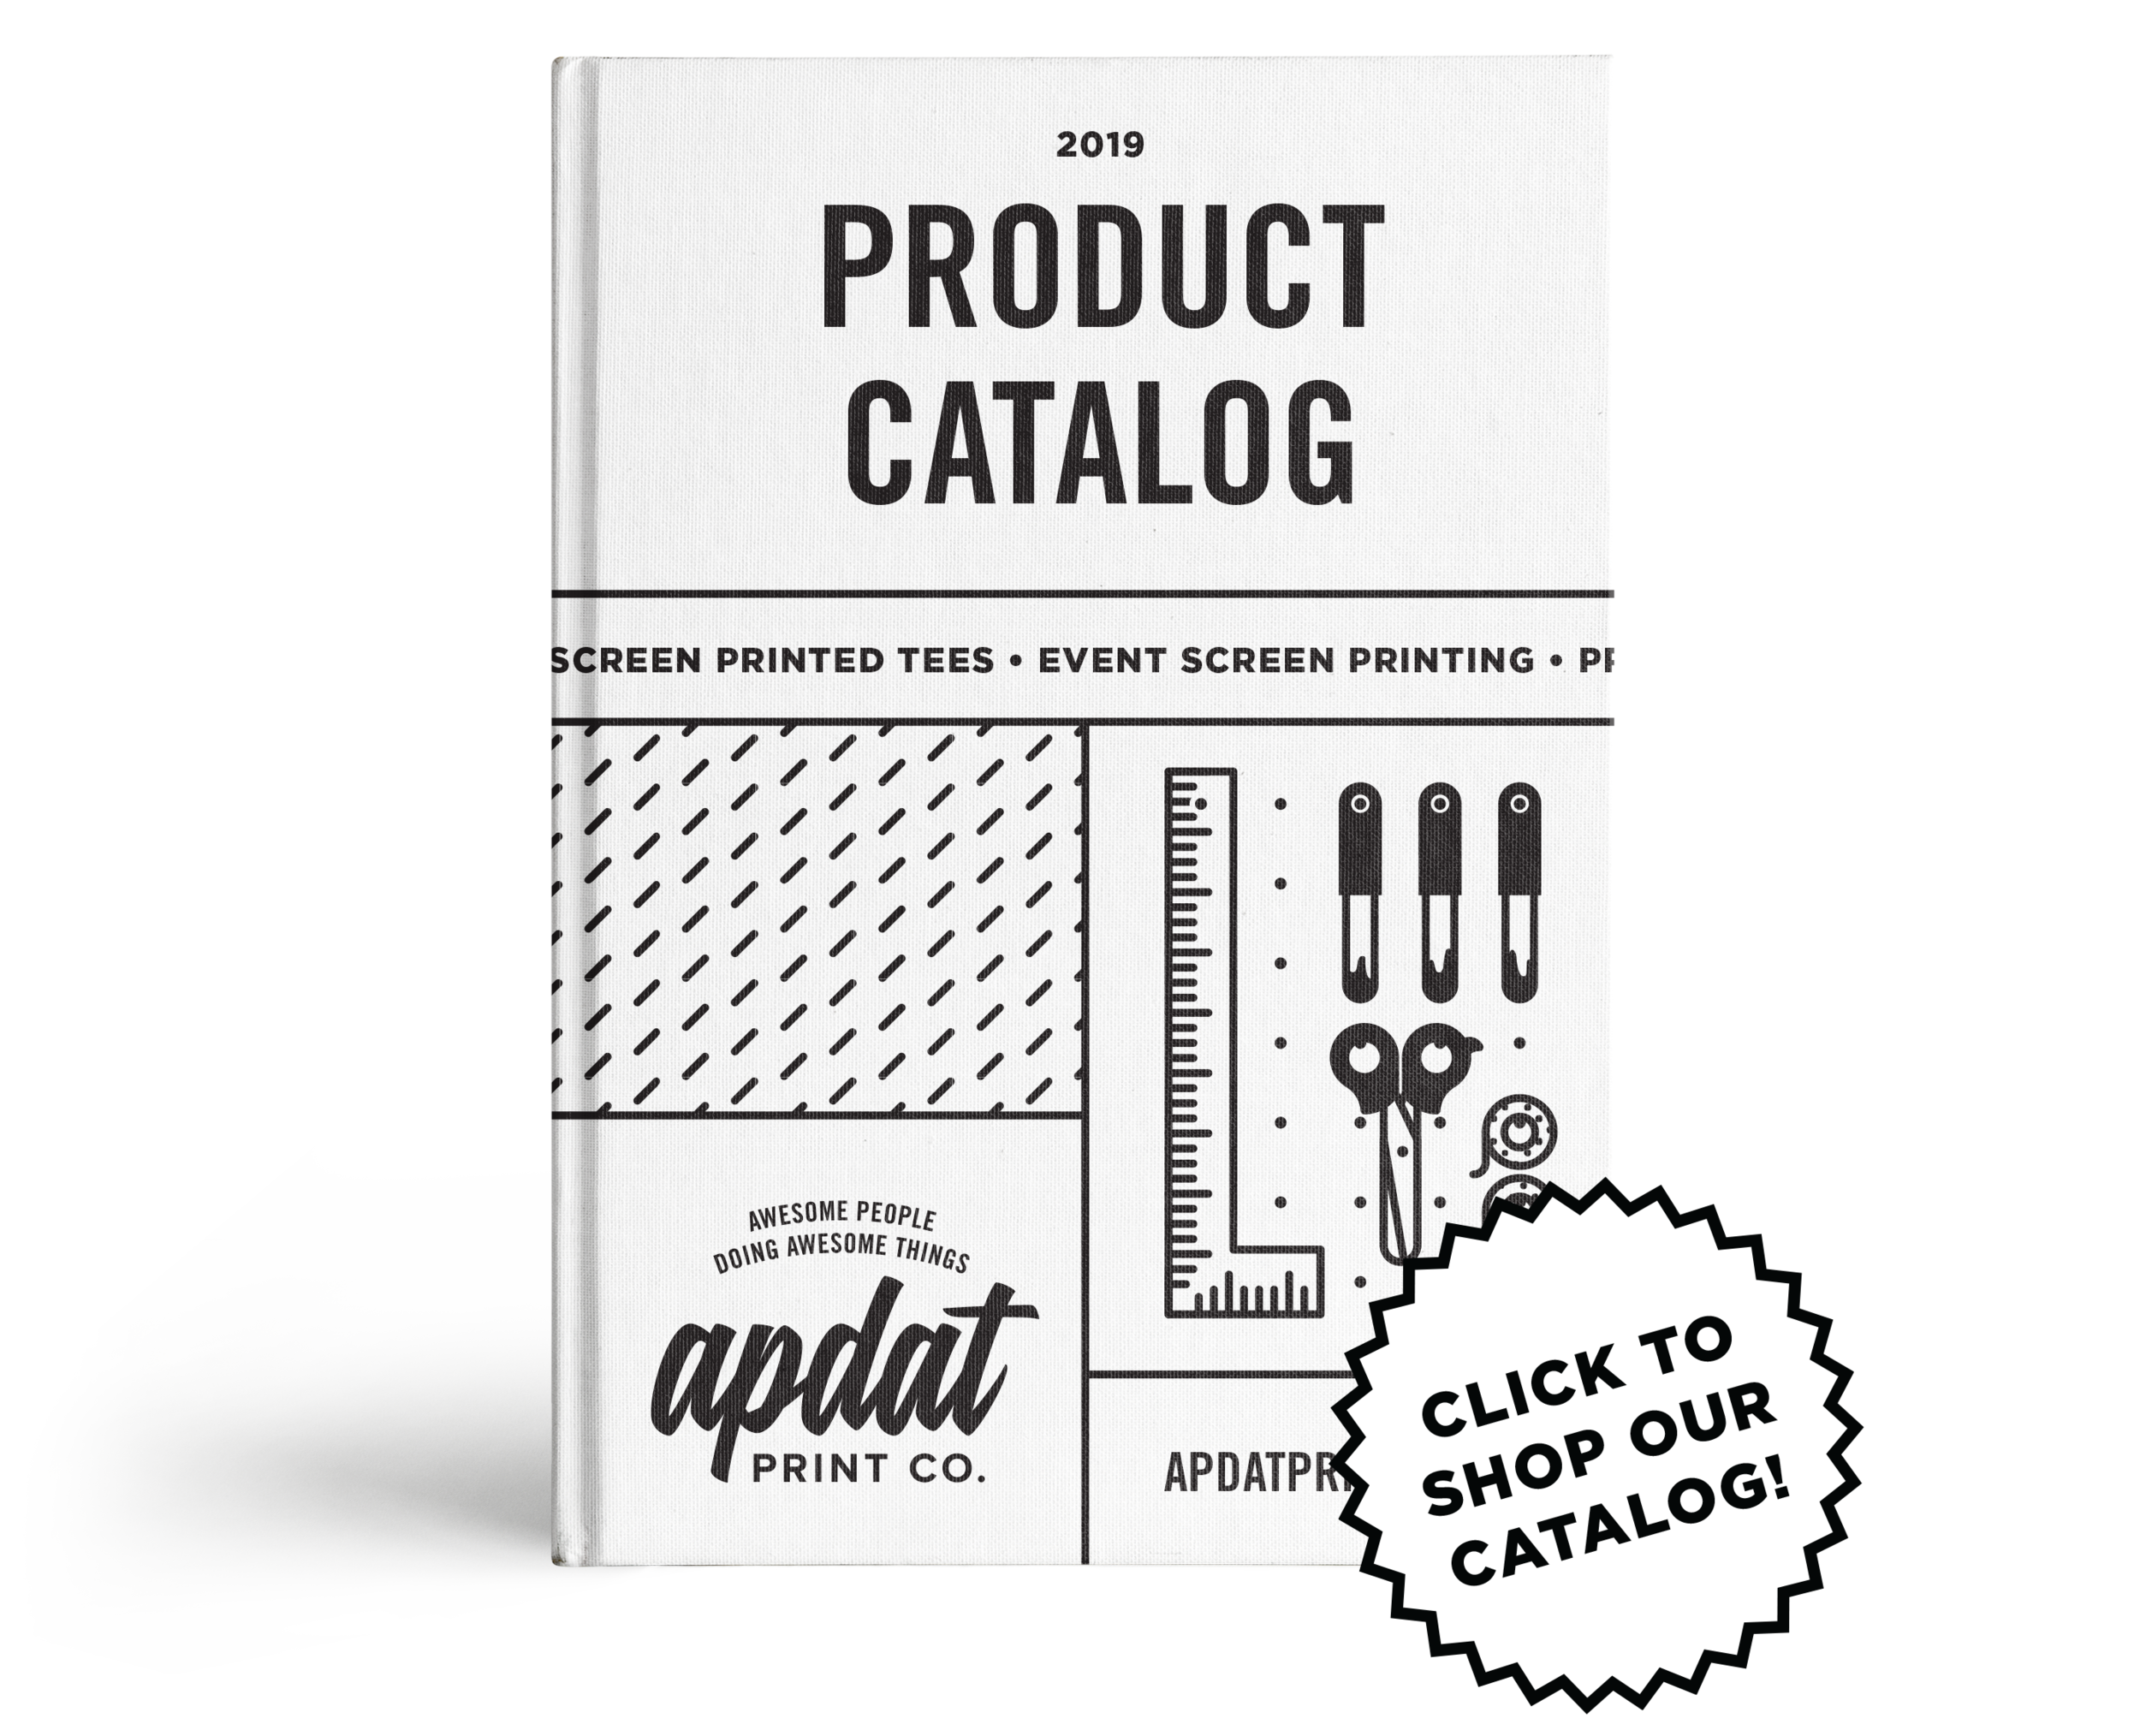 apdat-catalog-shirts